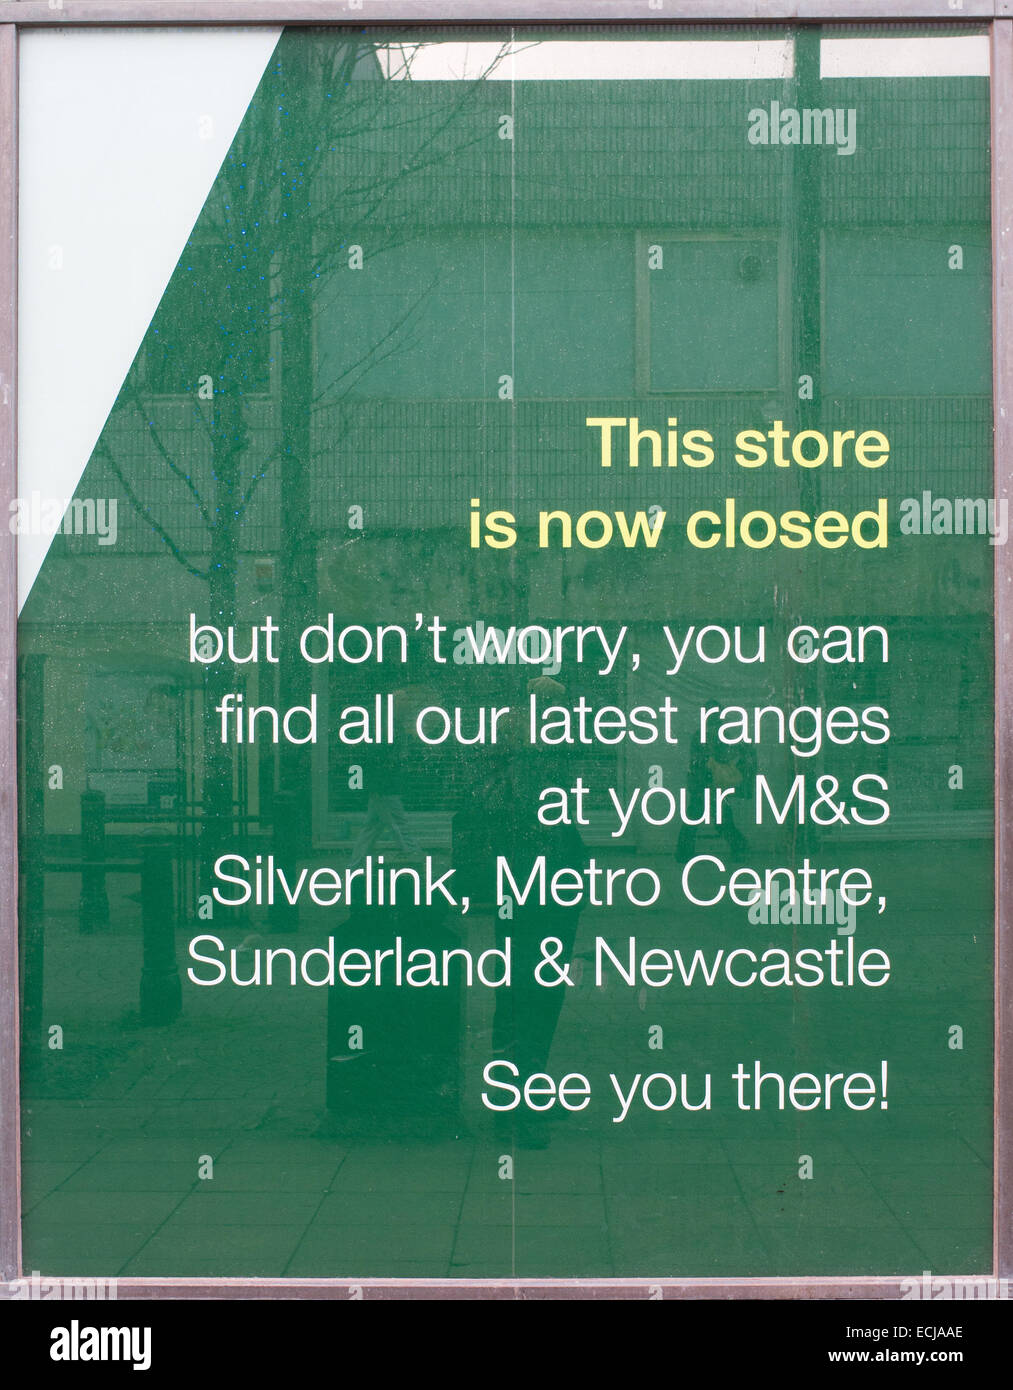 Sign on window of closed Marks and Spencer's store in South Shields, north east England UK - Stock Image